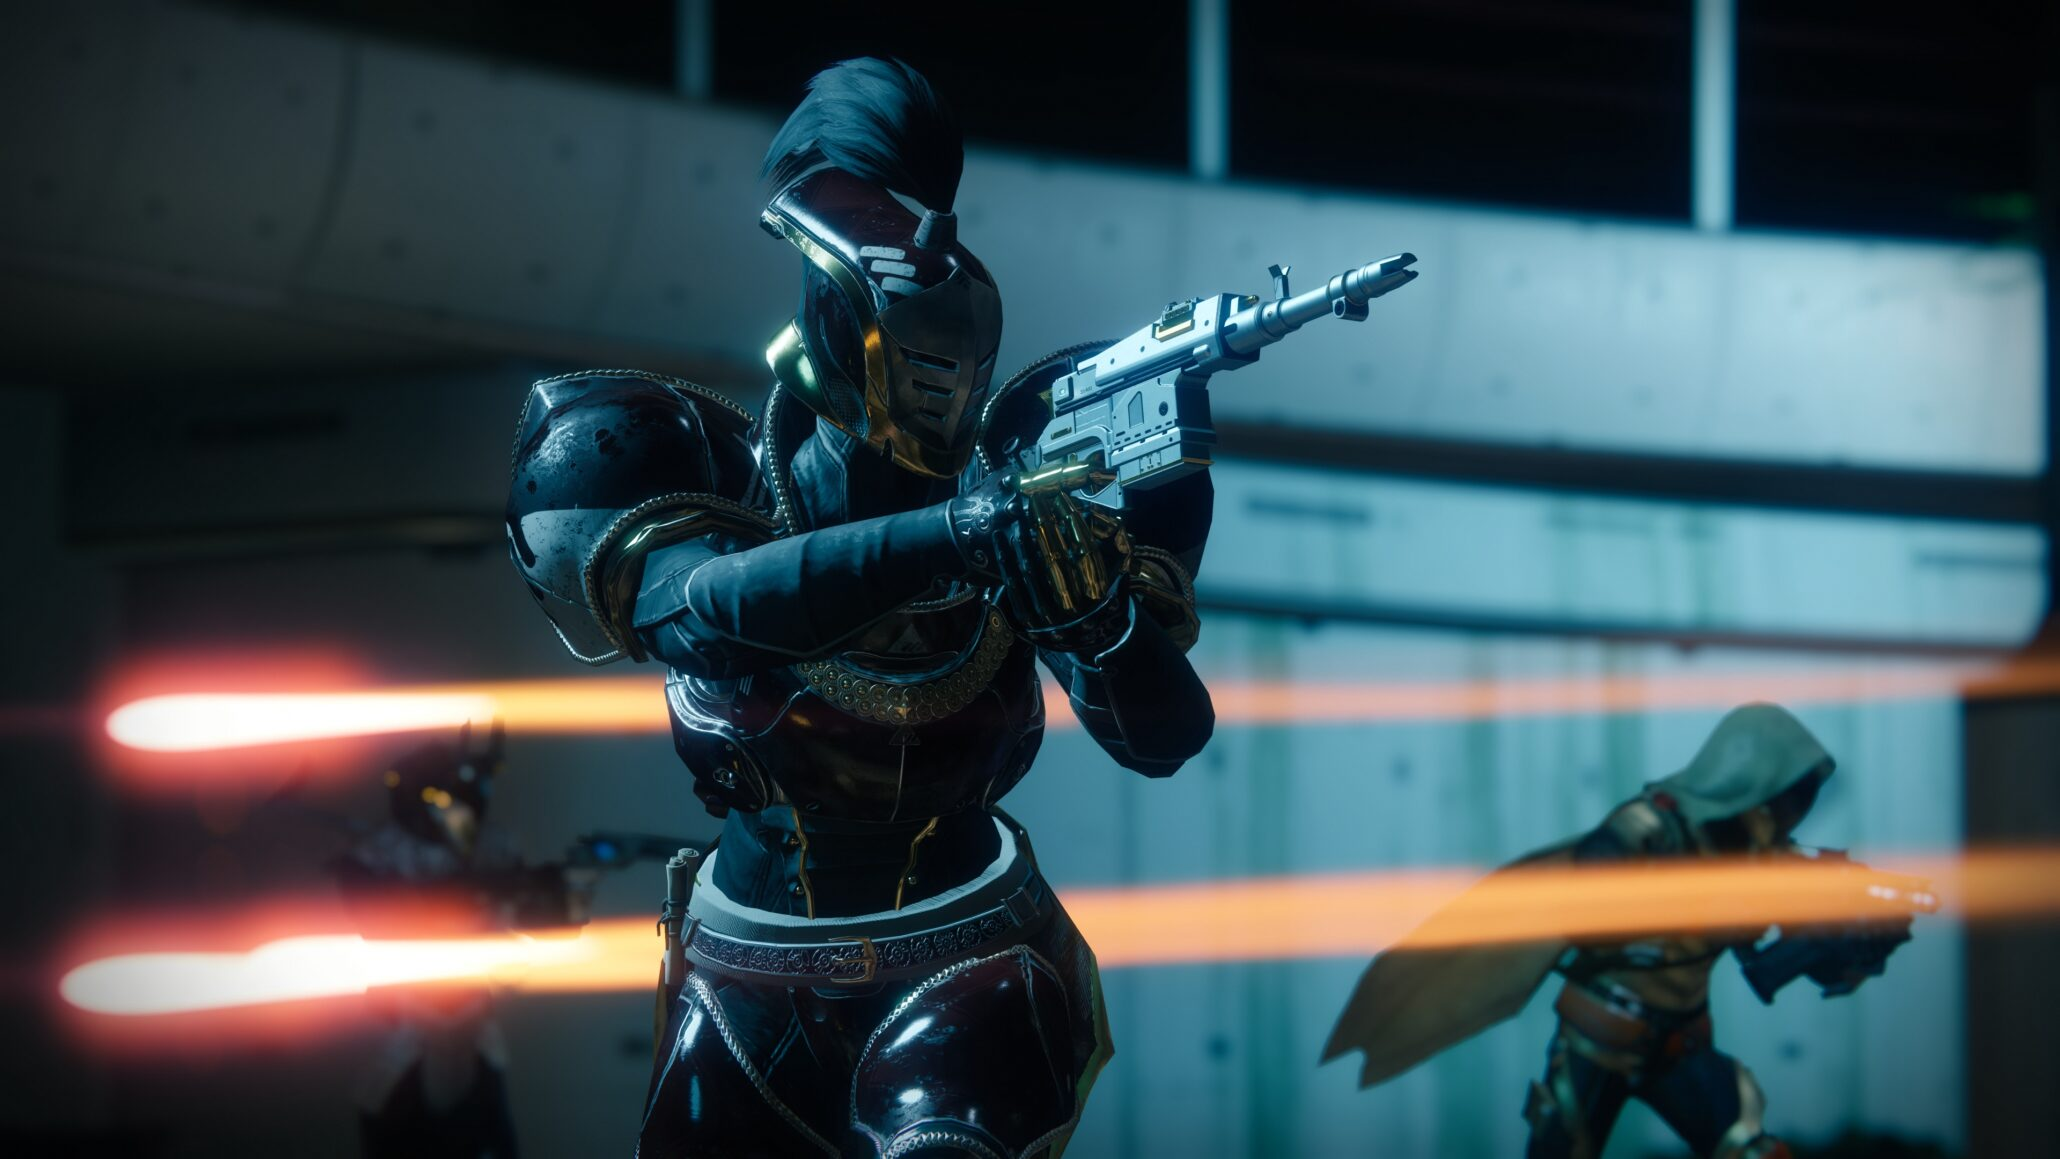 AMD Phenom II Users Are Suffering From Major Destiny 2 Crashes